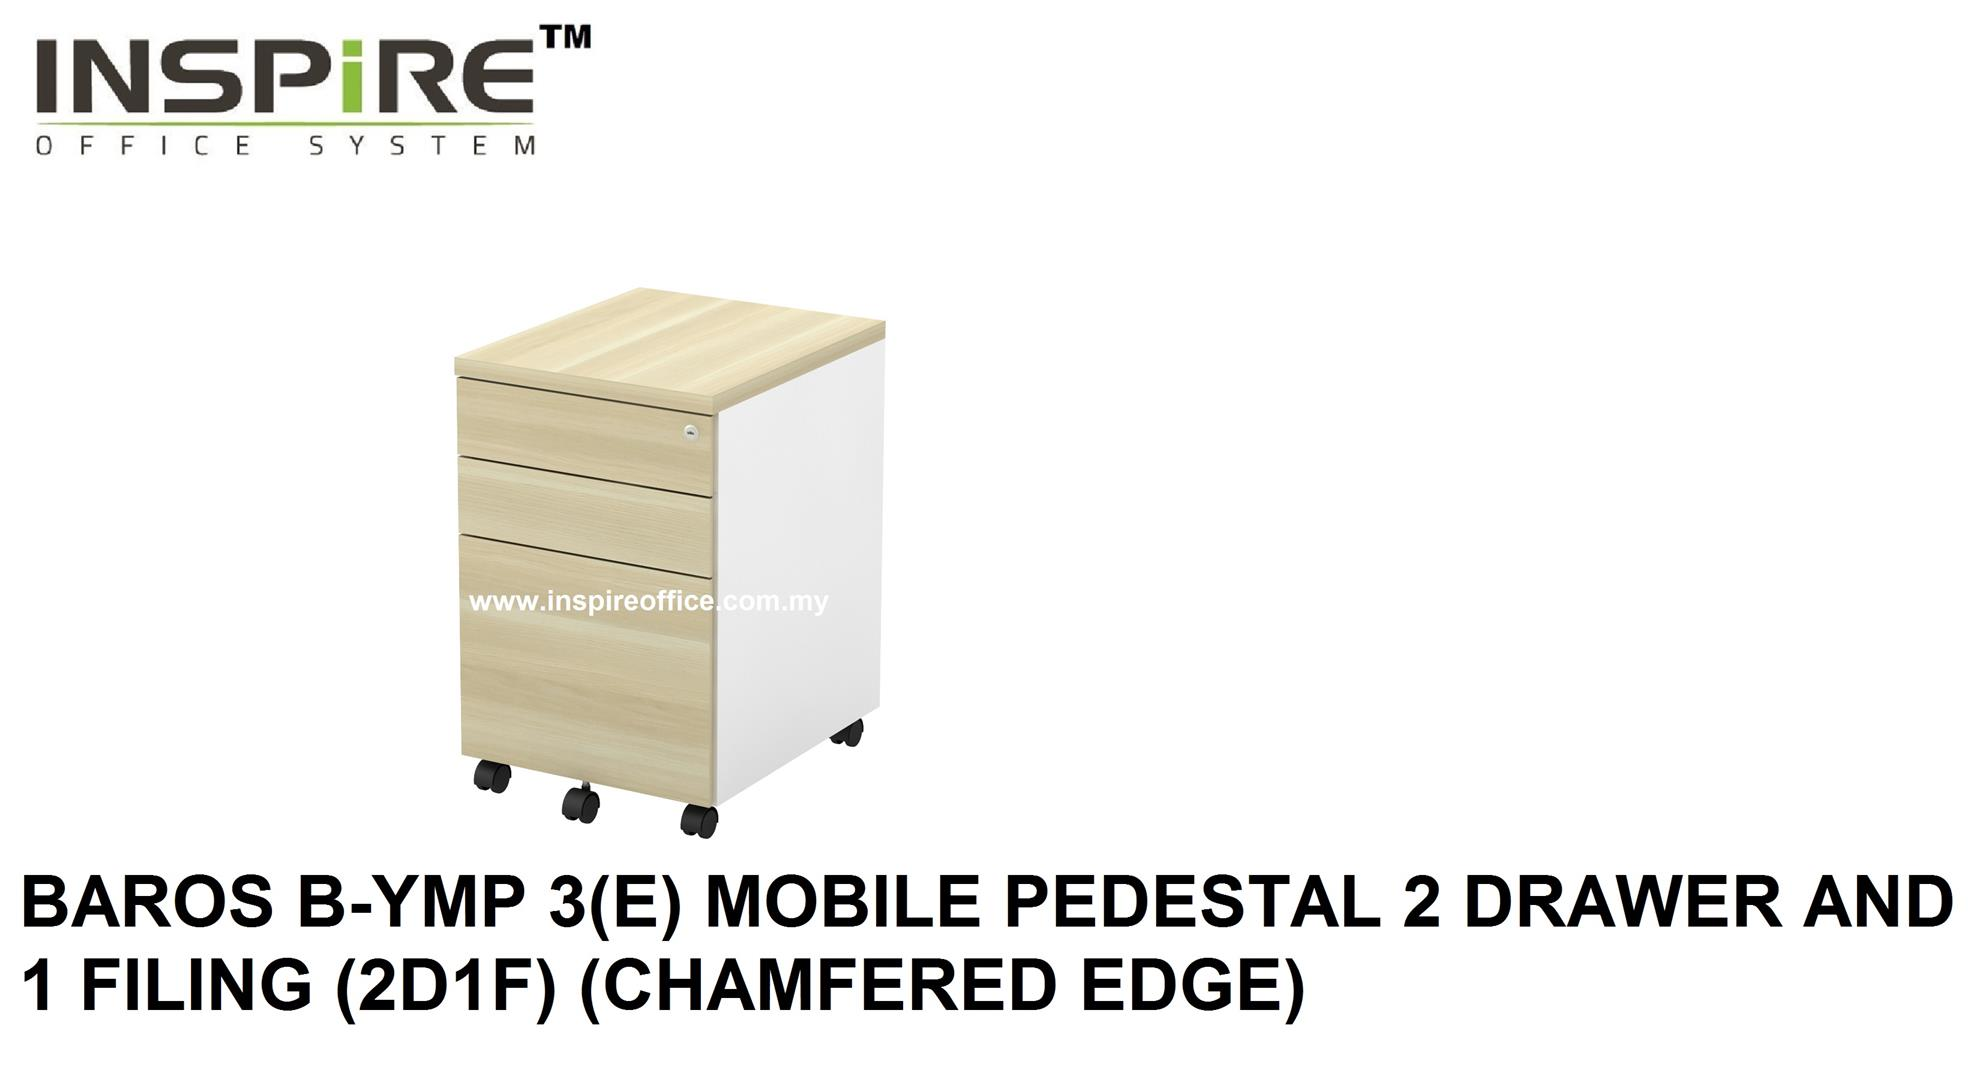 BAROS B-YMP 3(E) MOBILE PEDESTAL 2 DRAWER AND 1 FILING(CHAMFERED EDGE)